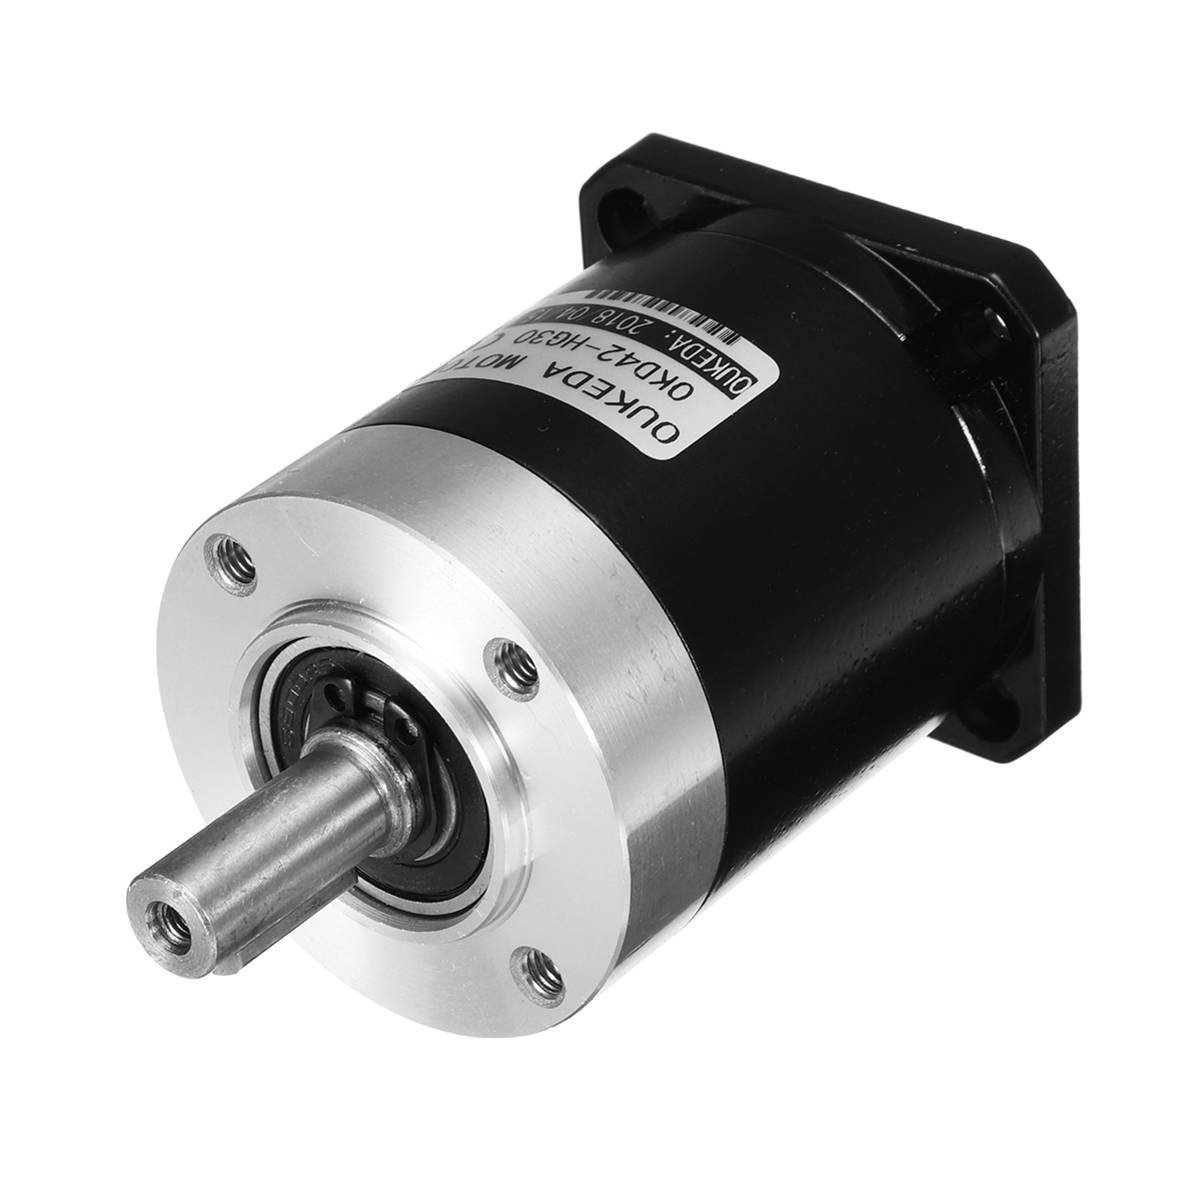 Stepper Motor Planetary Gearbox Gear Ratio 40:1 50:1 100:1 Stepper Motor Electrical Equipment & Supplies Motors AccessoriesStepper Motor Planetary Gearbox Gear Ratio 40:1 50:1 100:1 Stepper Motor Electrical Equipment & Supplies Motors Accessories